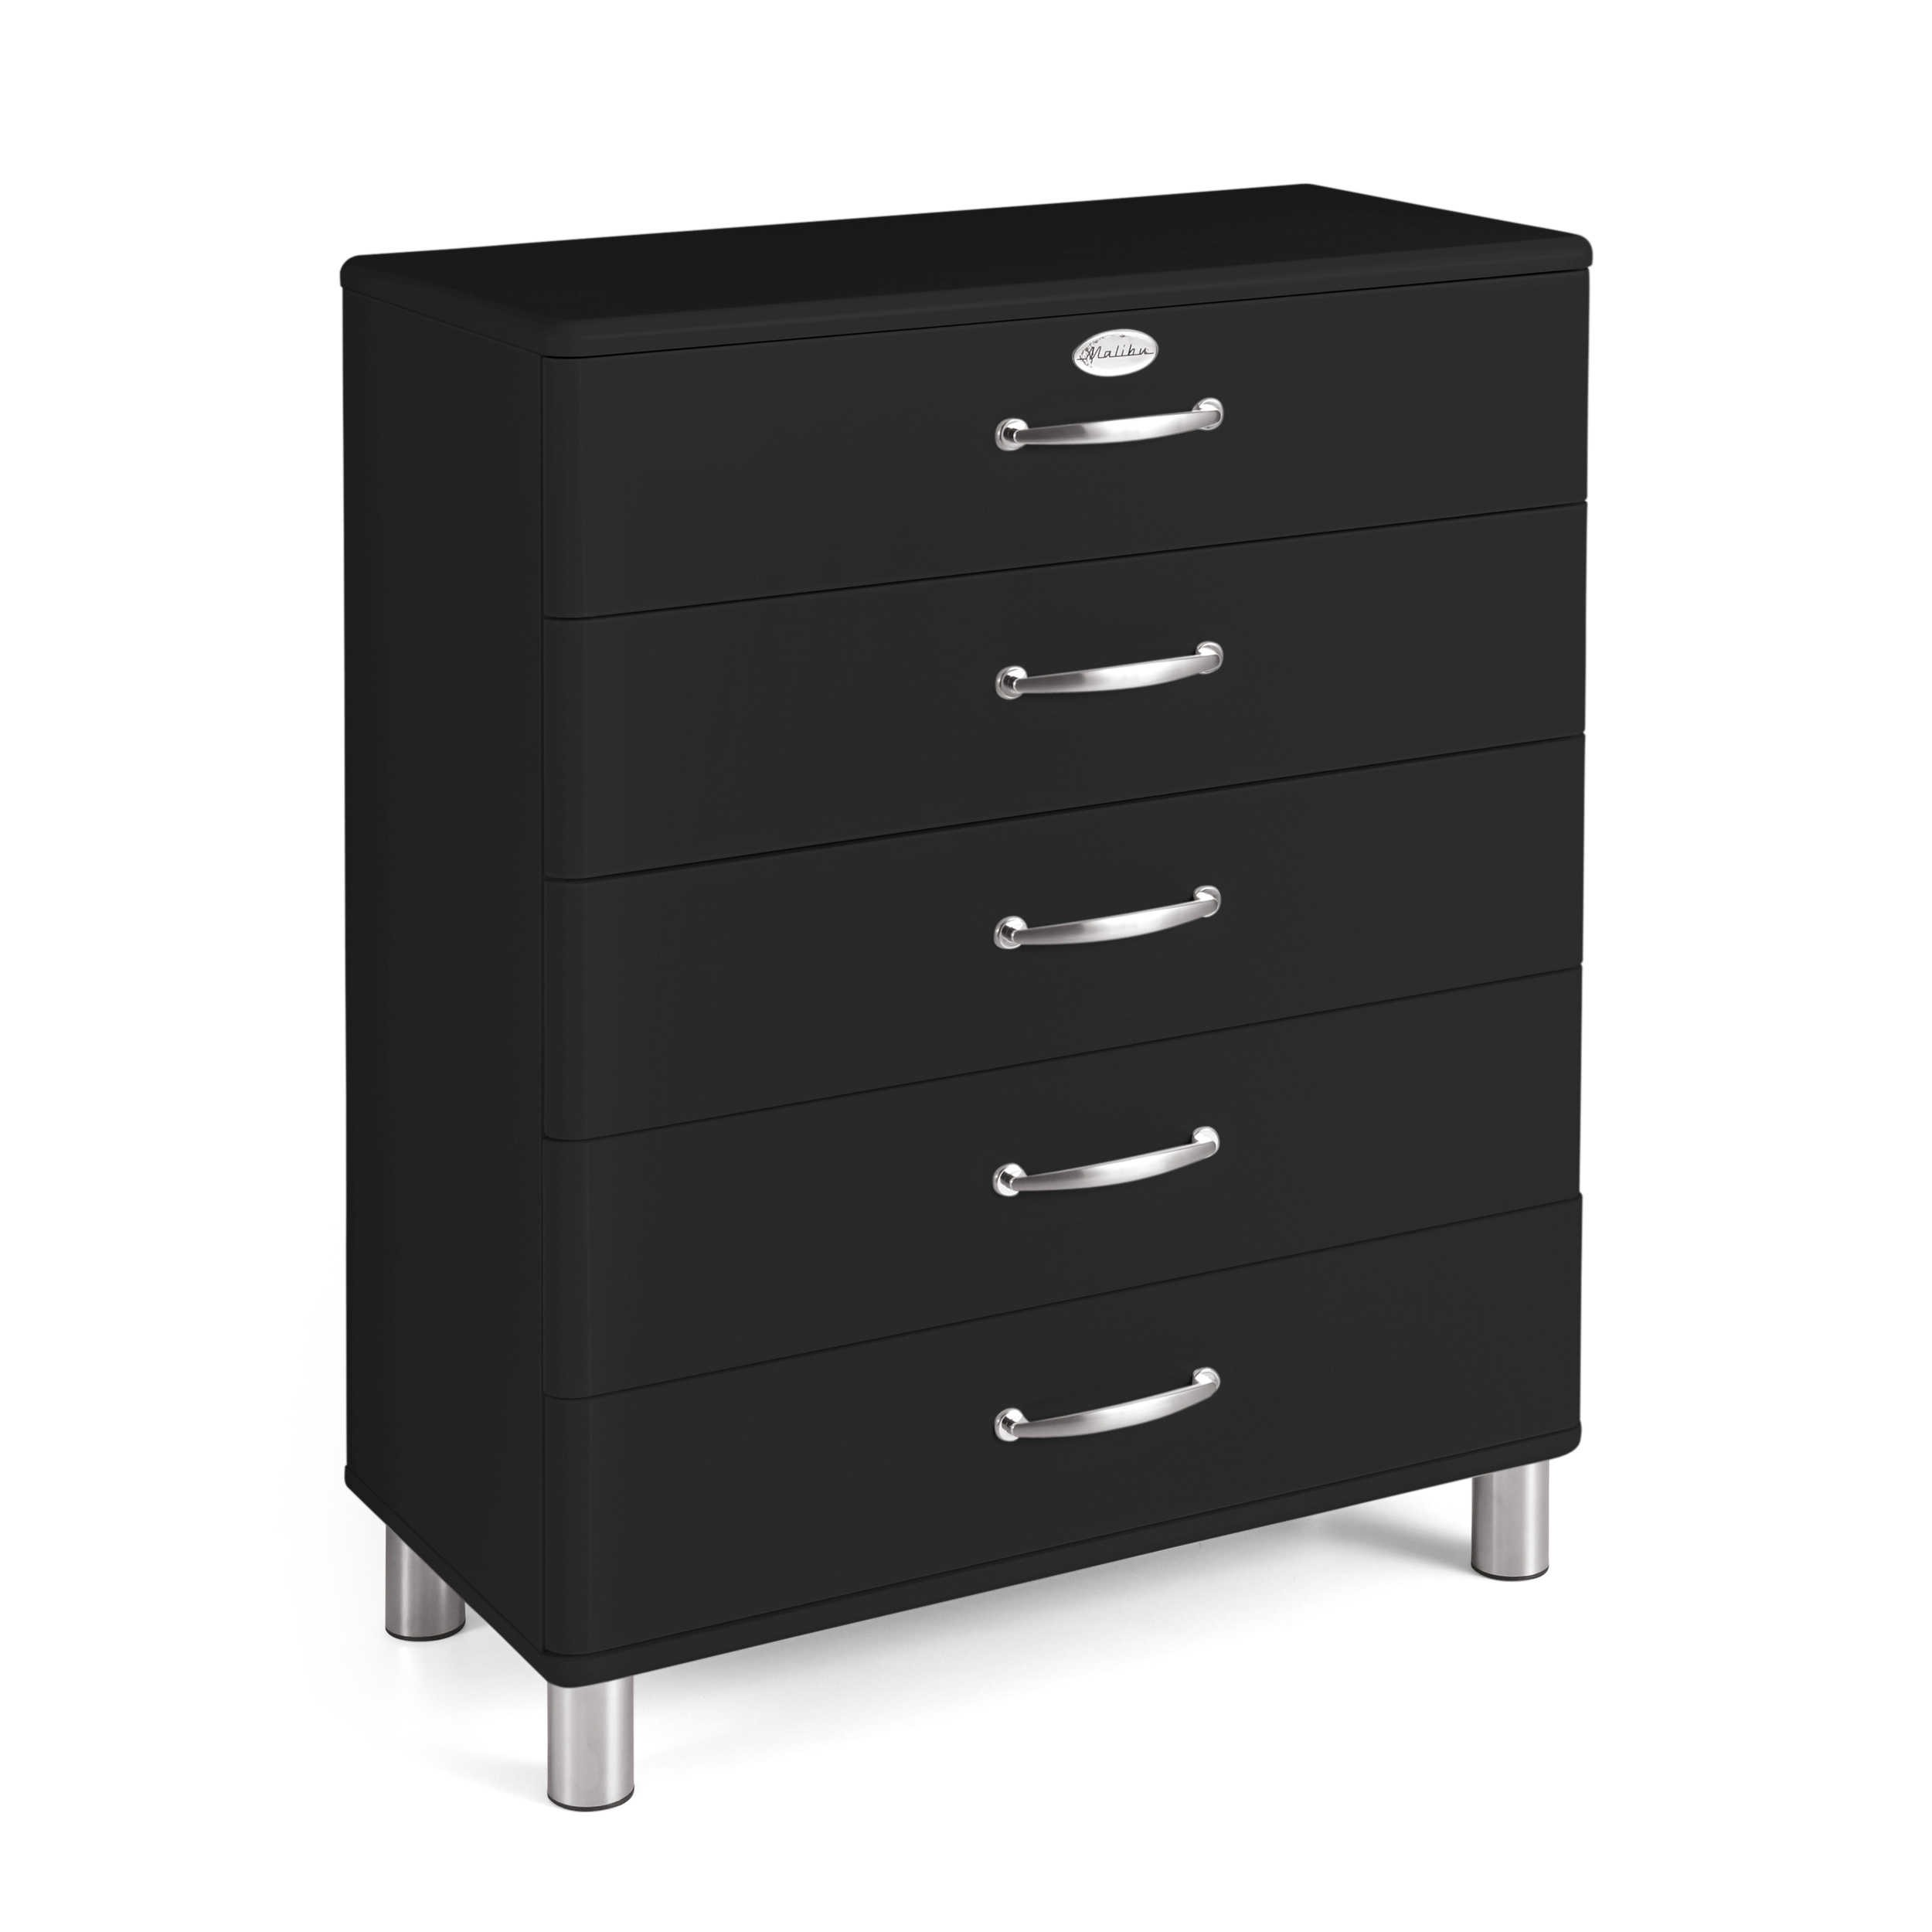 tenzo kommode malibu schwarz lack hochglanz online kaufen bei woonio. Black Bedroom Furniture Sets. Home Design Ideas